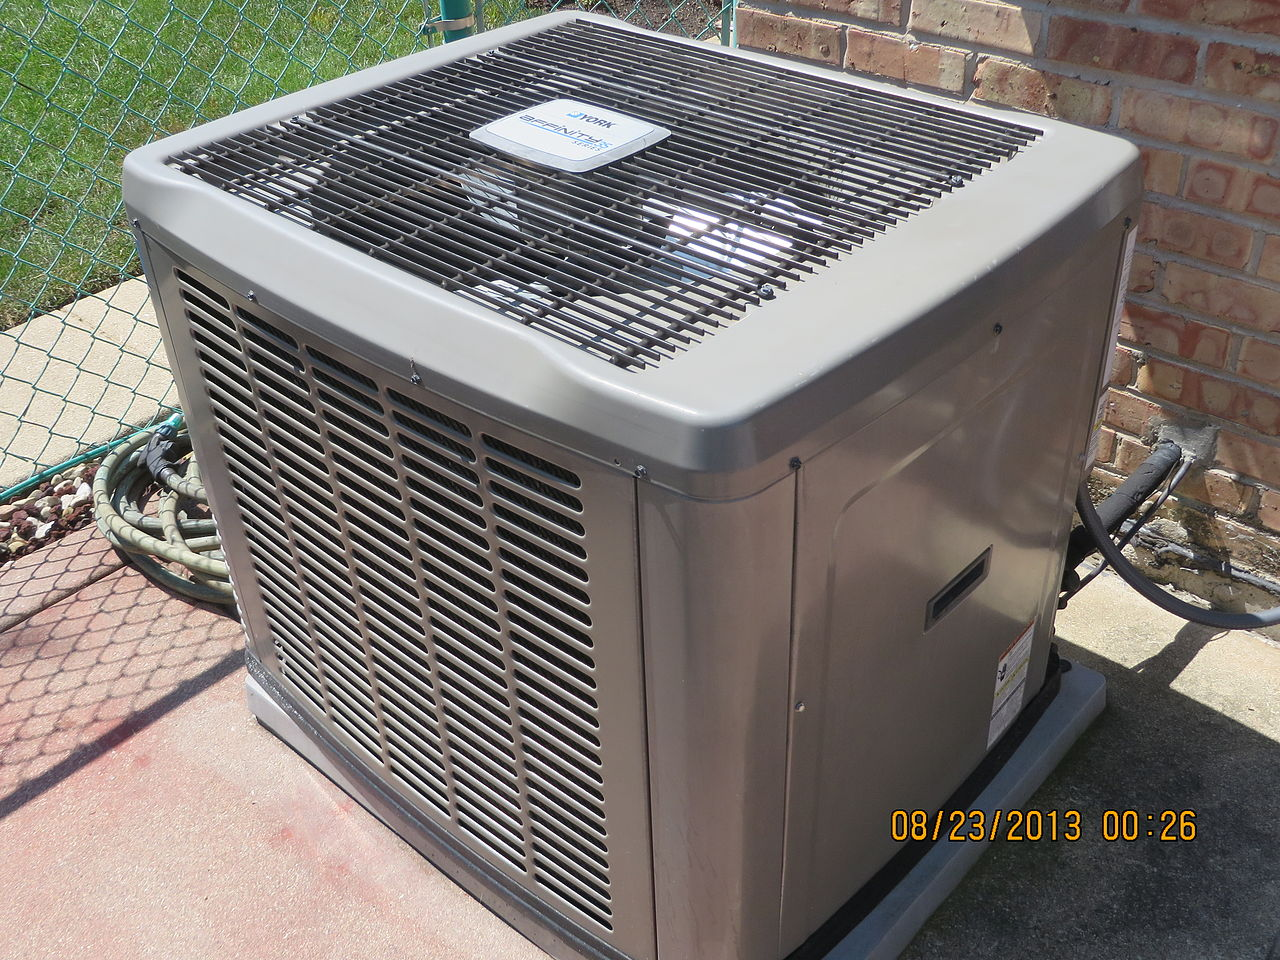 File:Condenser unit for central air conditioning.JPG #7A6151